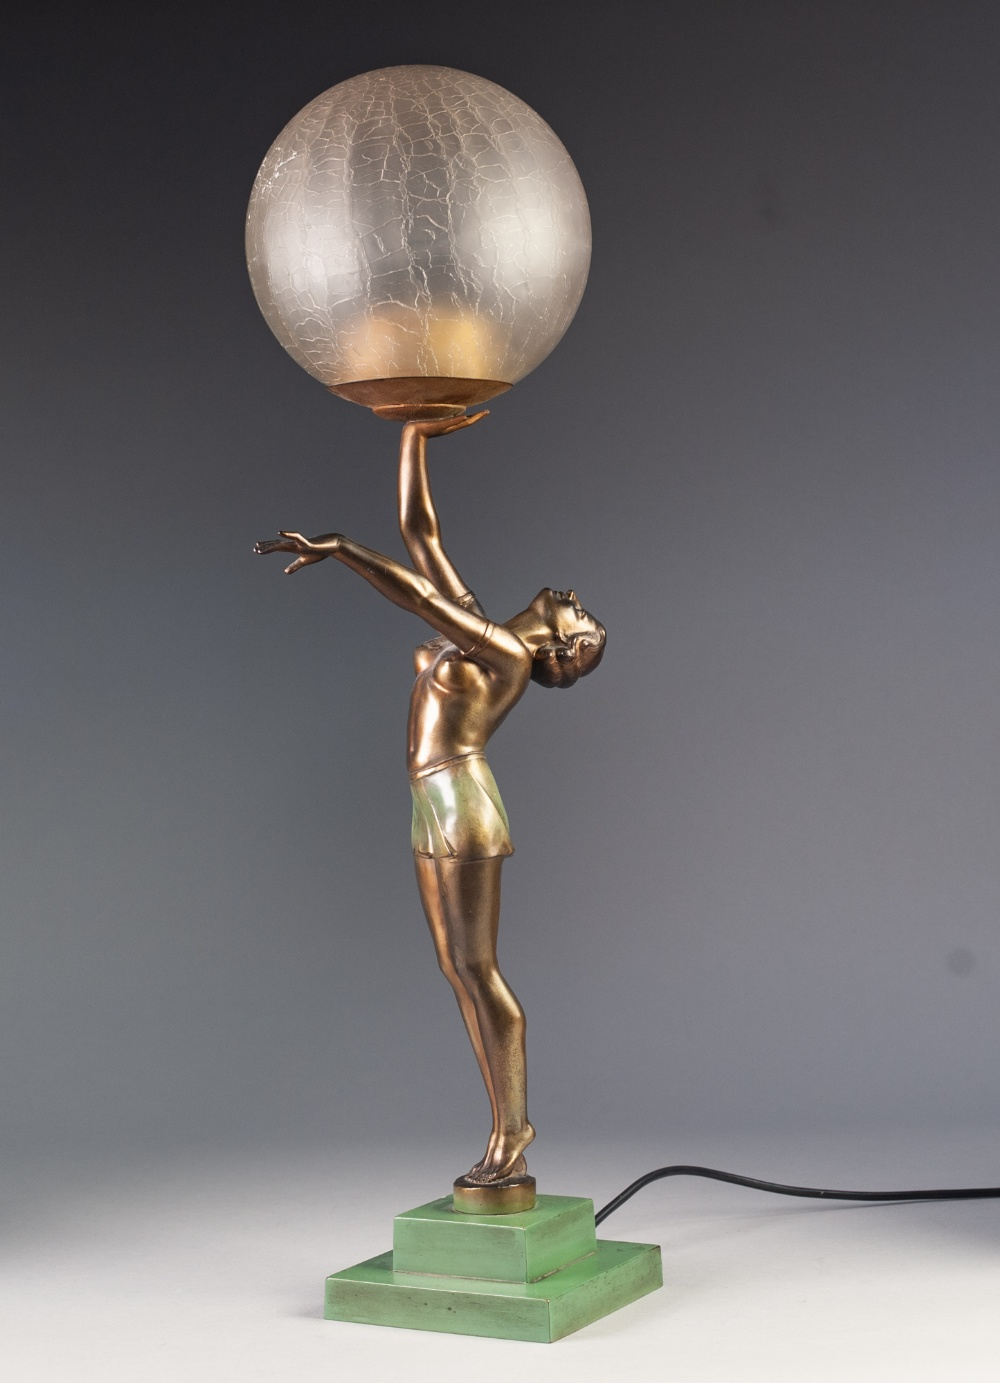 Lot 30 - ART DECO COLD PAINTED SPELTER FIGURAL TABLE LAMP, modelled as a female figure in stylised pose